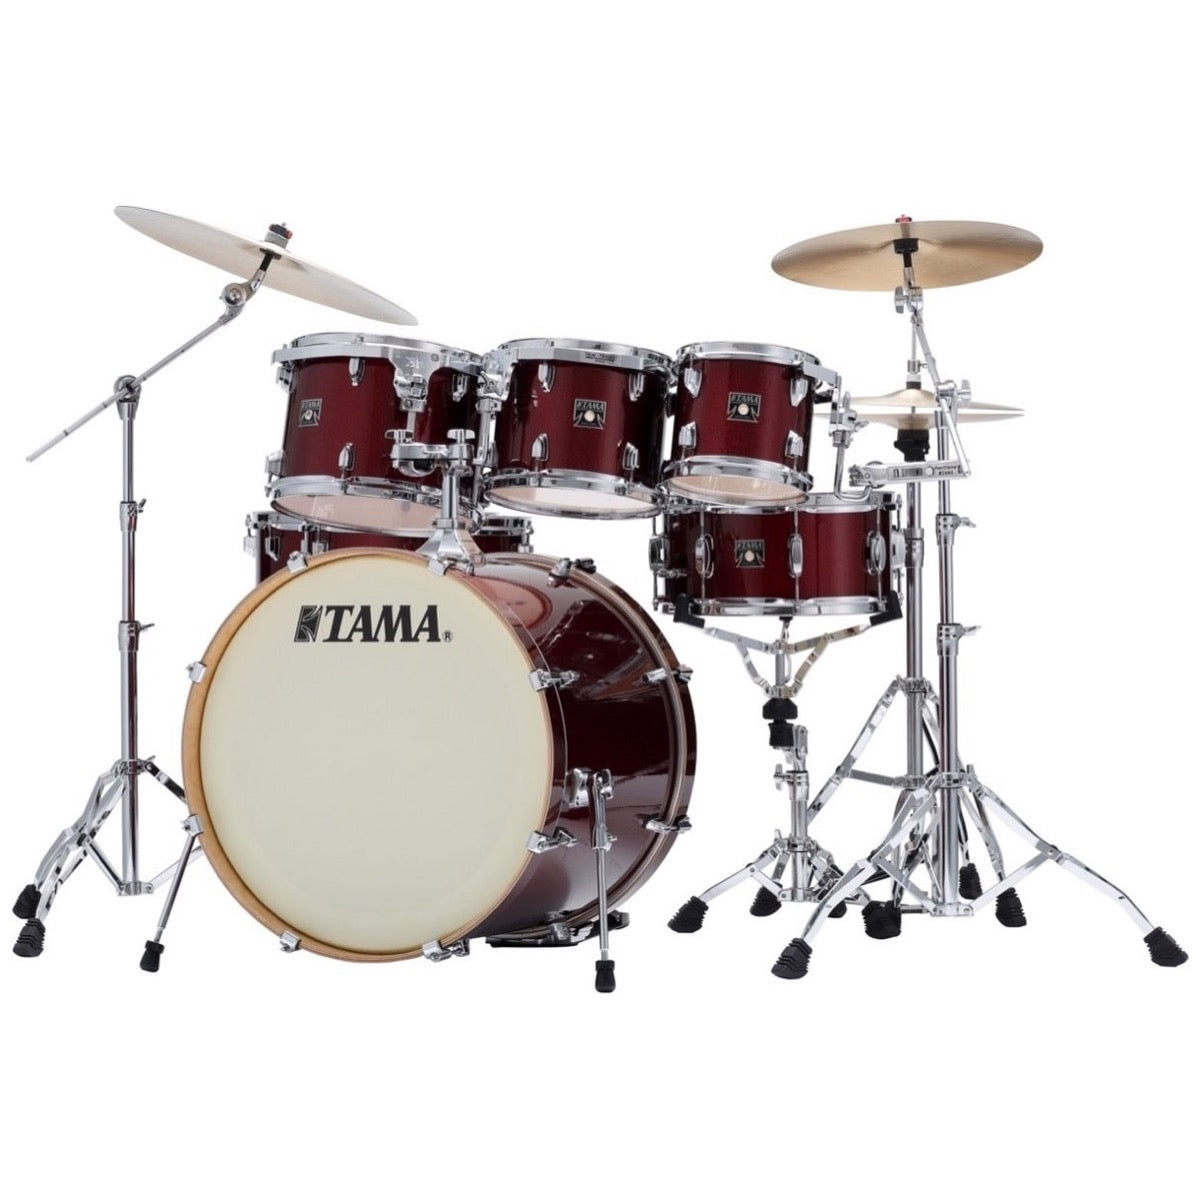 Tama CK72S Superstar Classic Drum Shell Kit, 7-Piece, Dark Red Sparkle